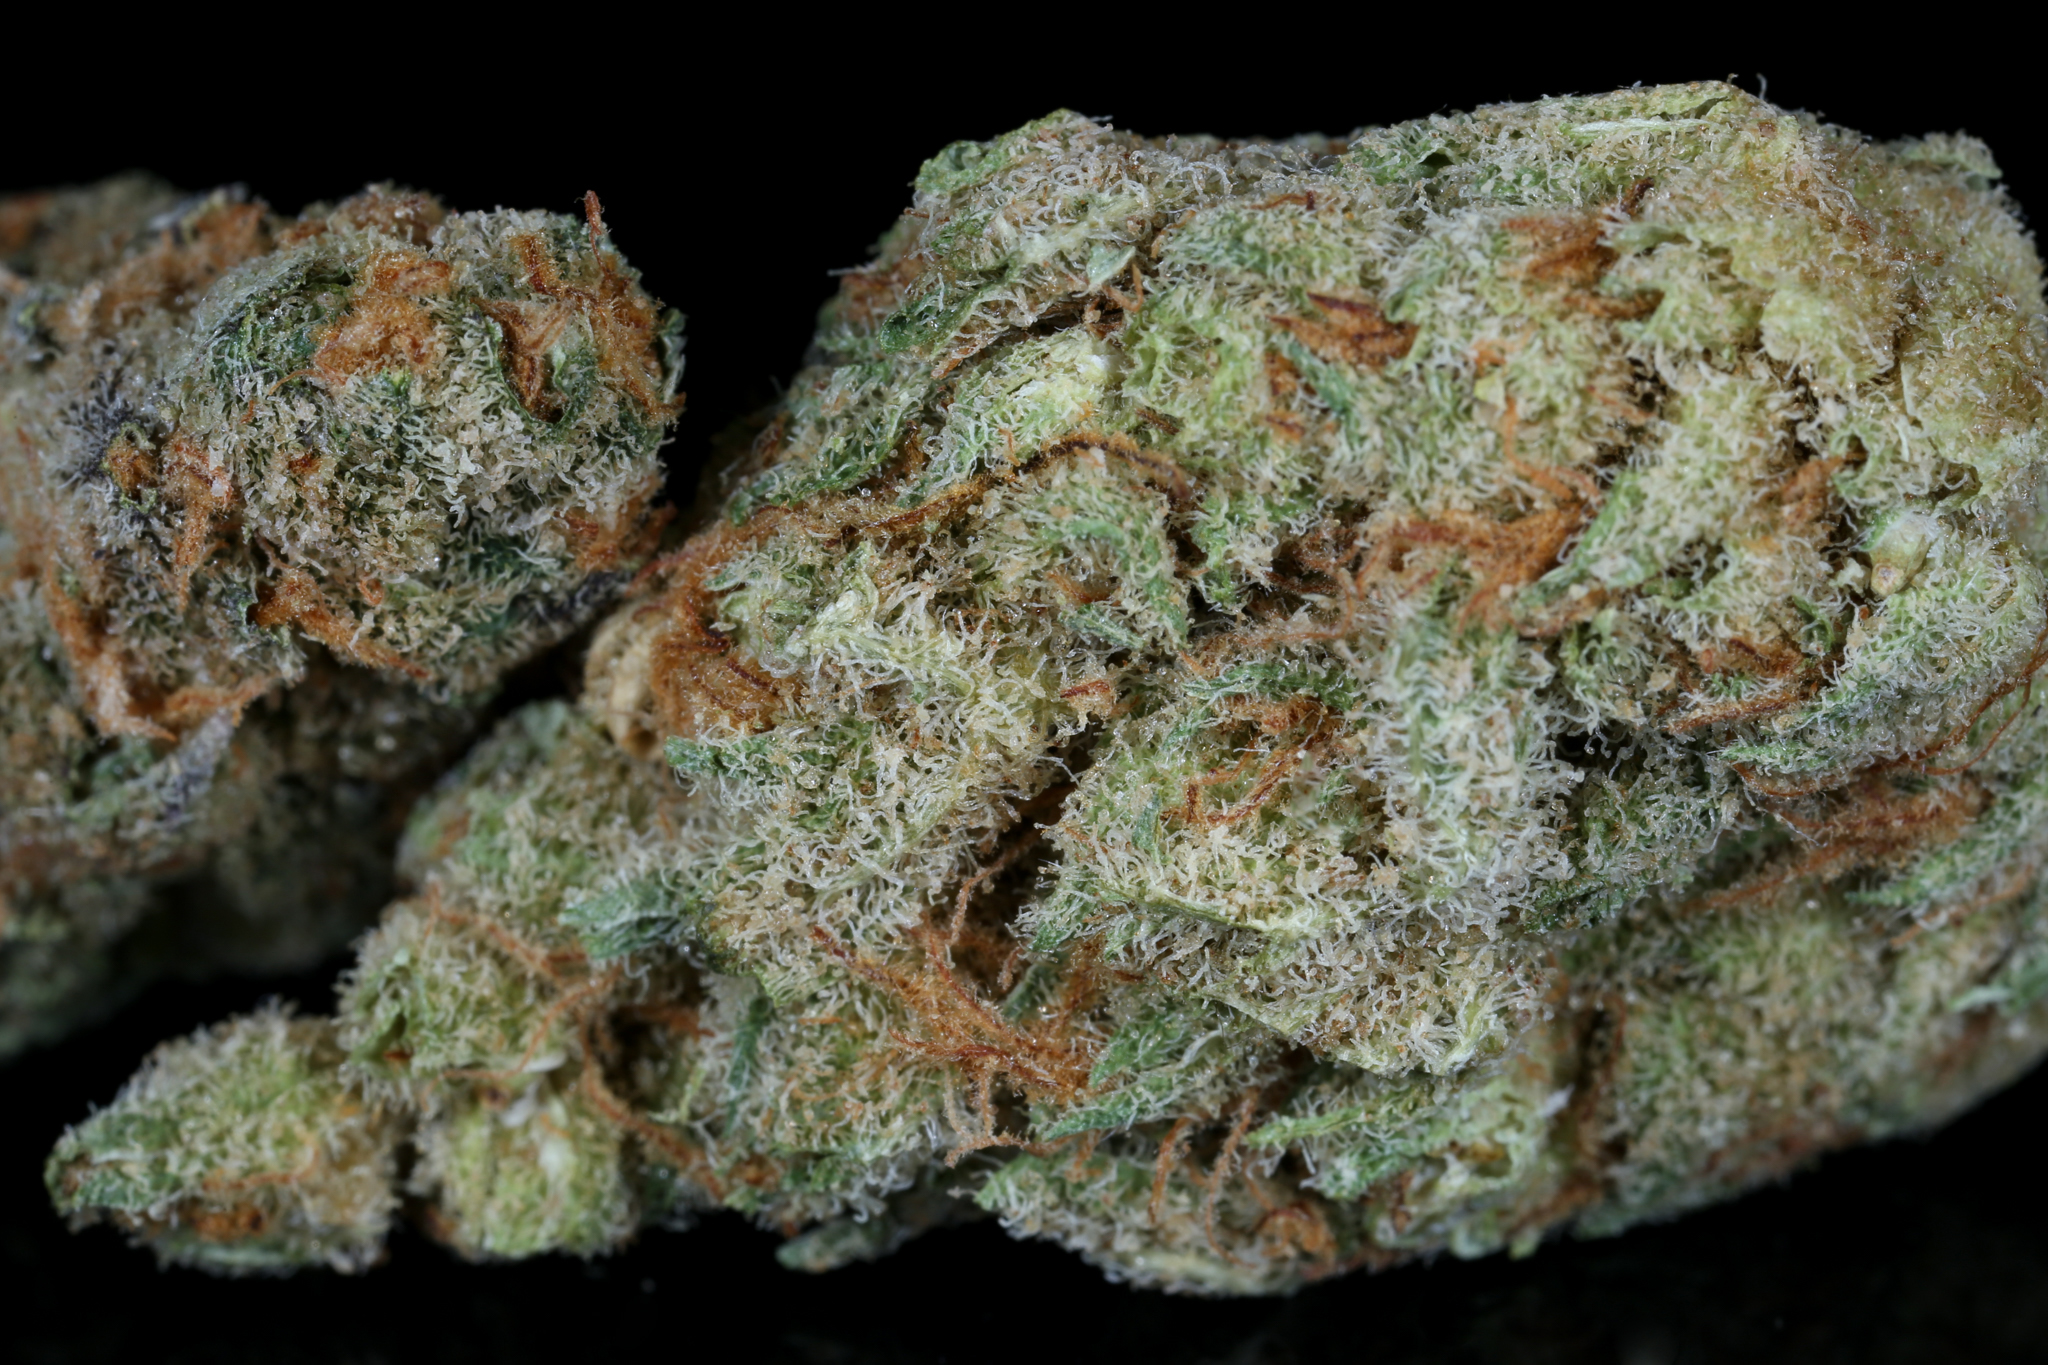 Slymer-weed-strain-matrix-tga-genetics-chernobyl-nevada-matrix-best-weed-ever